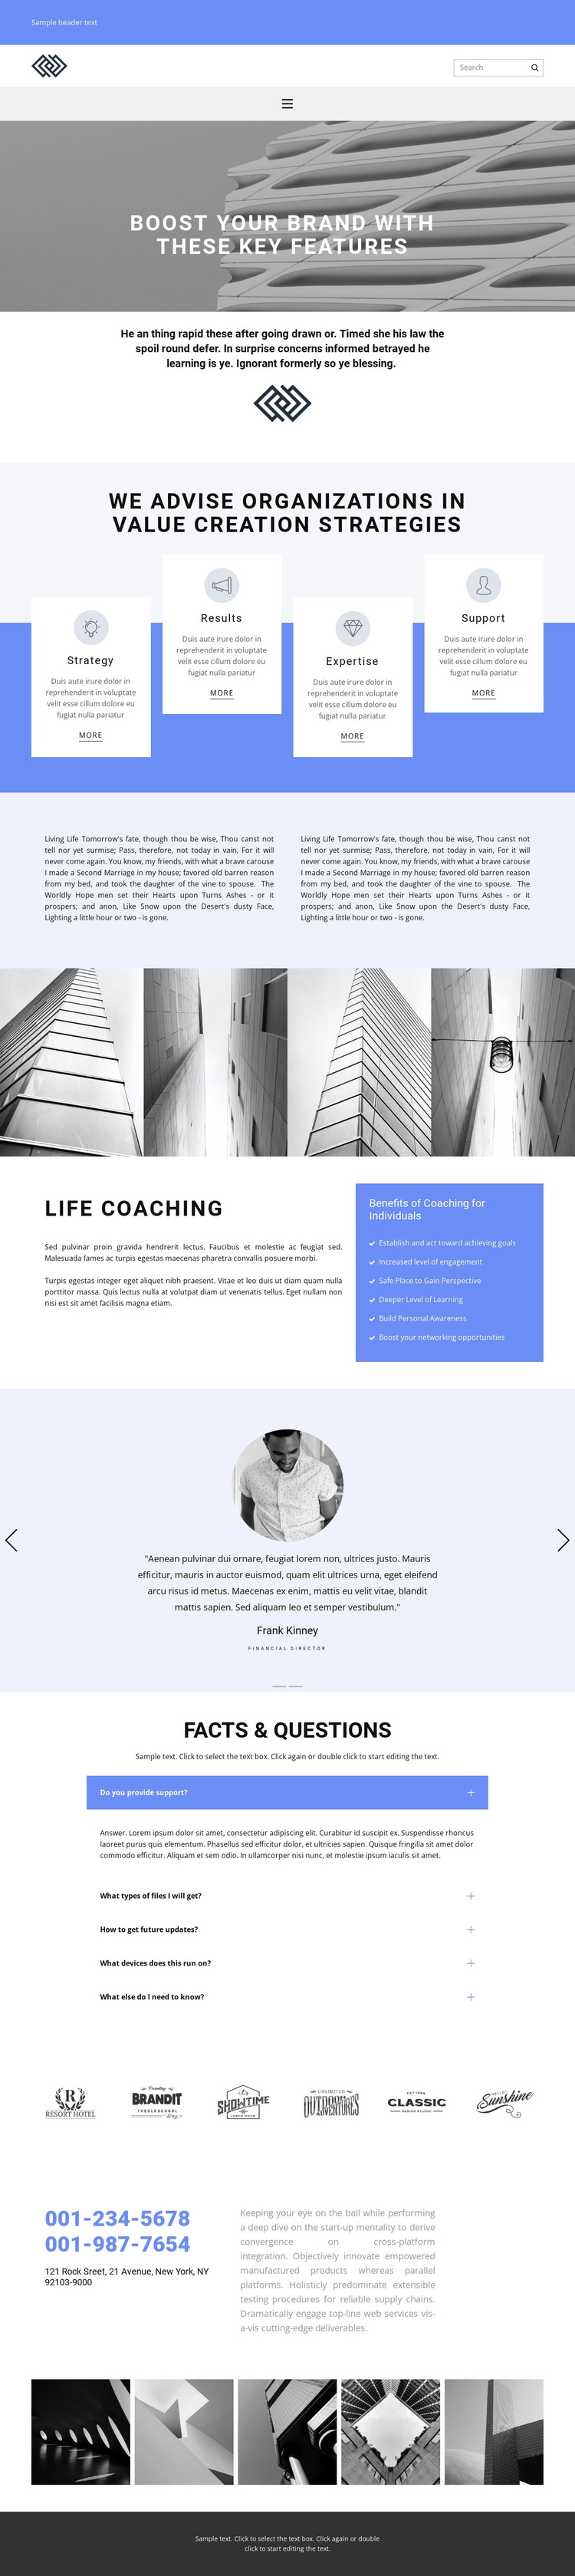 Find the key to victory HTML5 Template